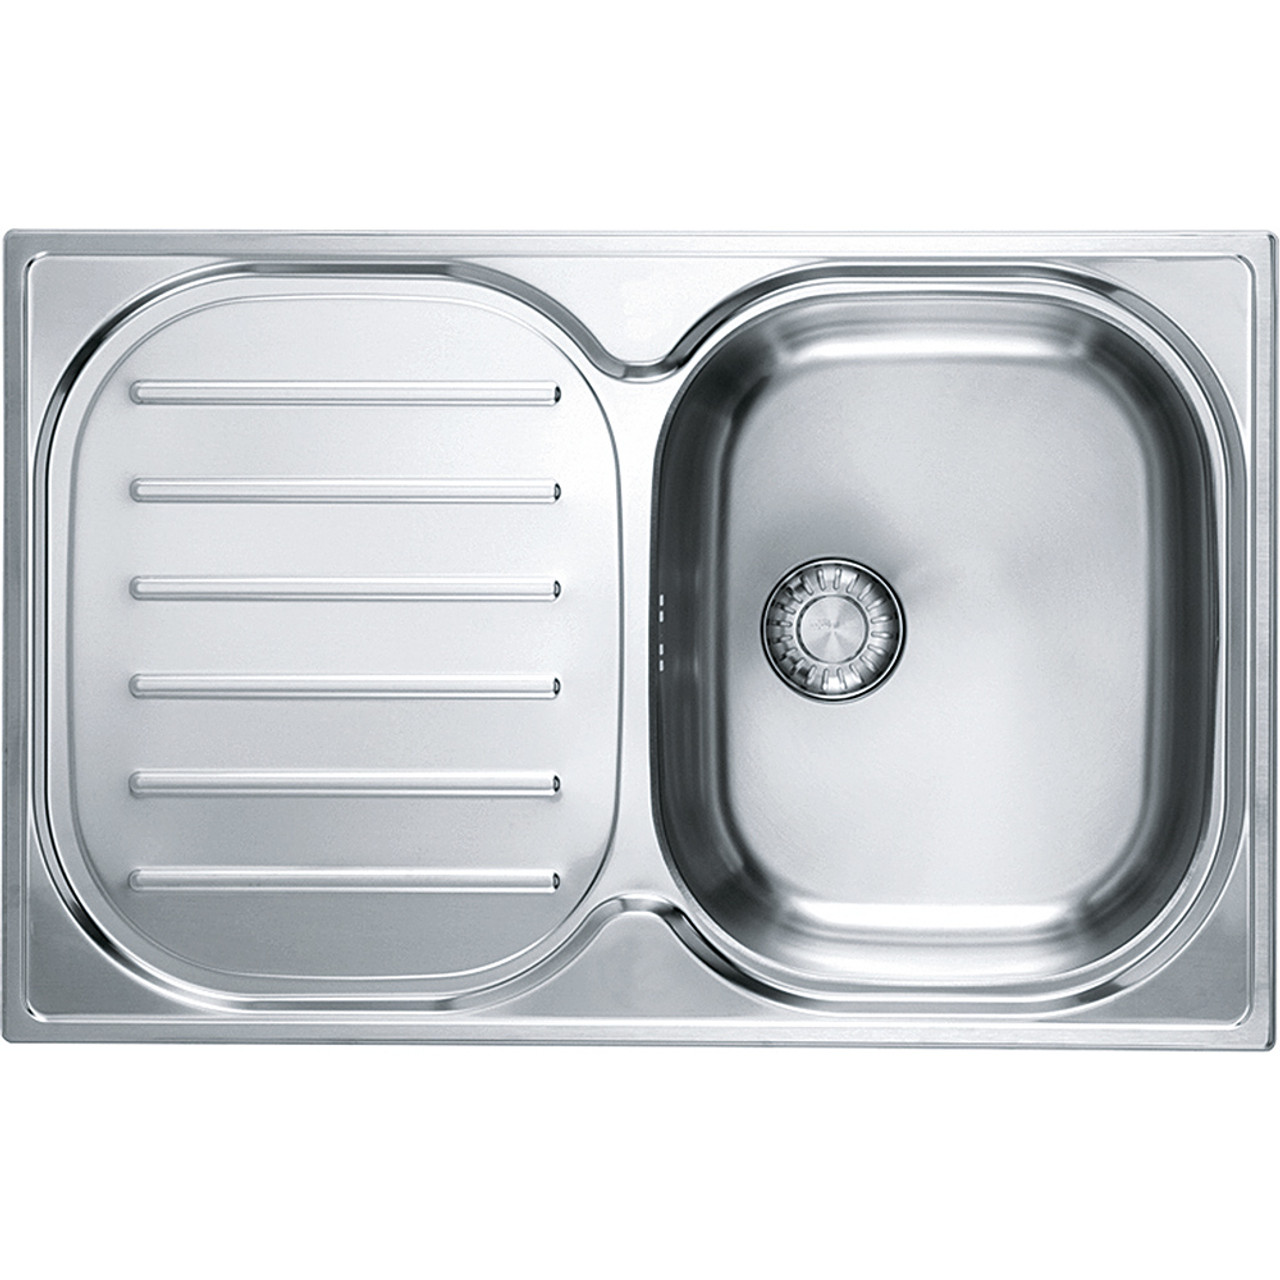 franke compact plus cpx p611-780 stainless steel kitchen sink - sinks